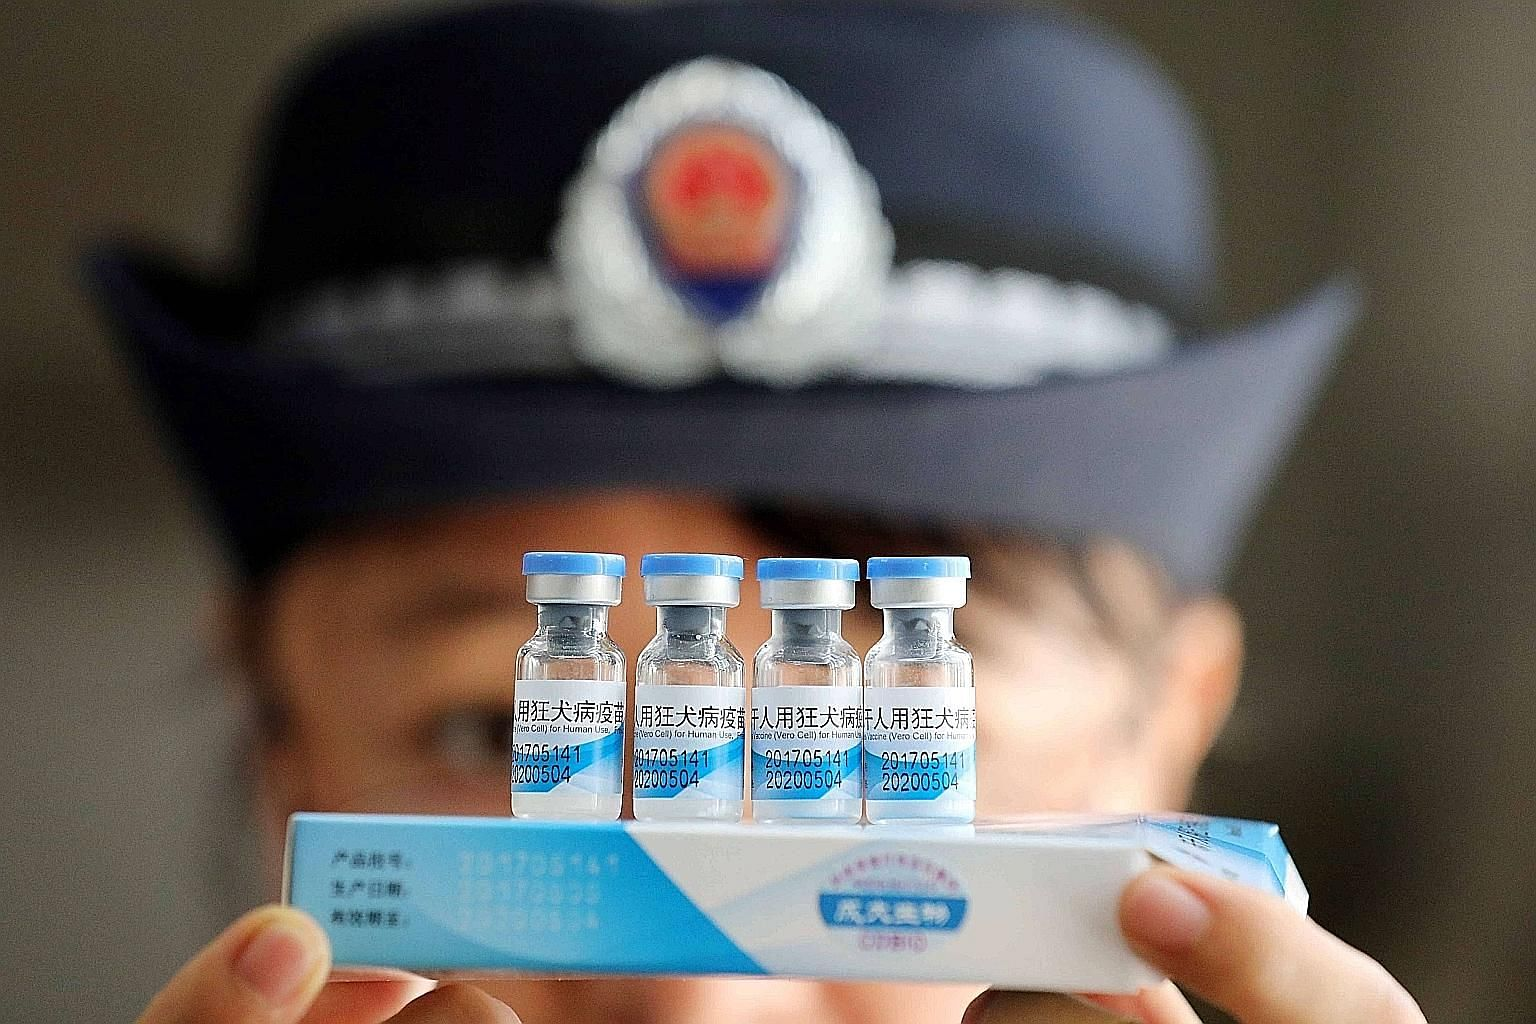 A law enforcement officer from the market supervision and administration bureau checking vaccines in Rongan, China.